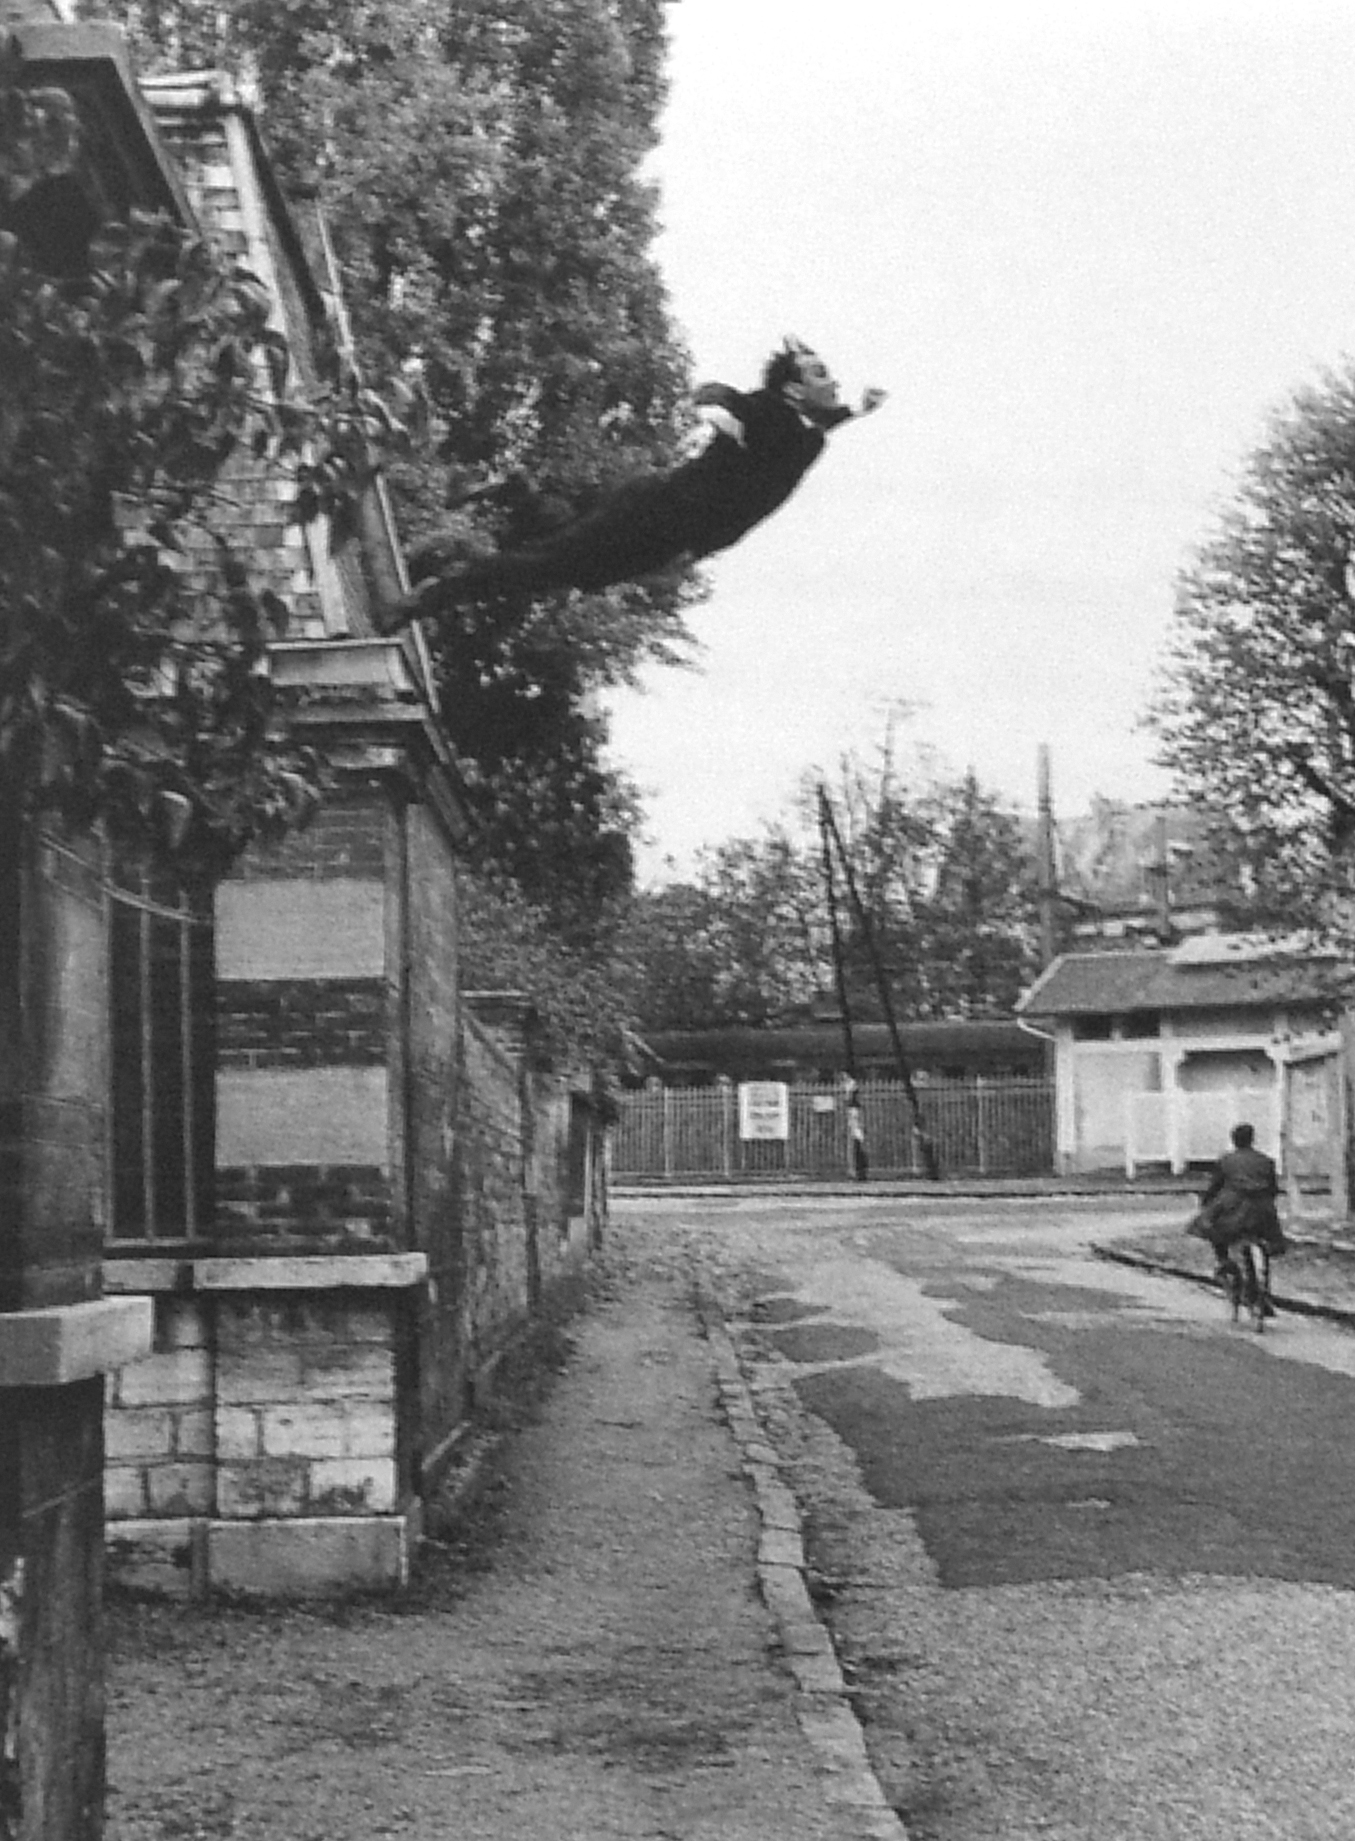 Yves Klein's Leap Into the Void